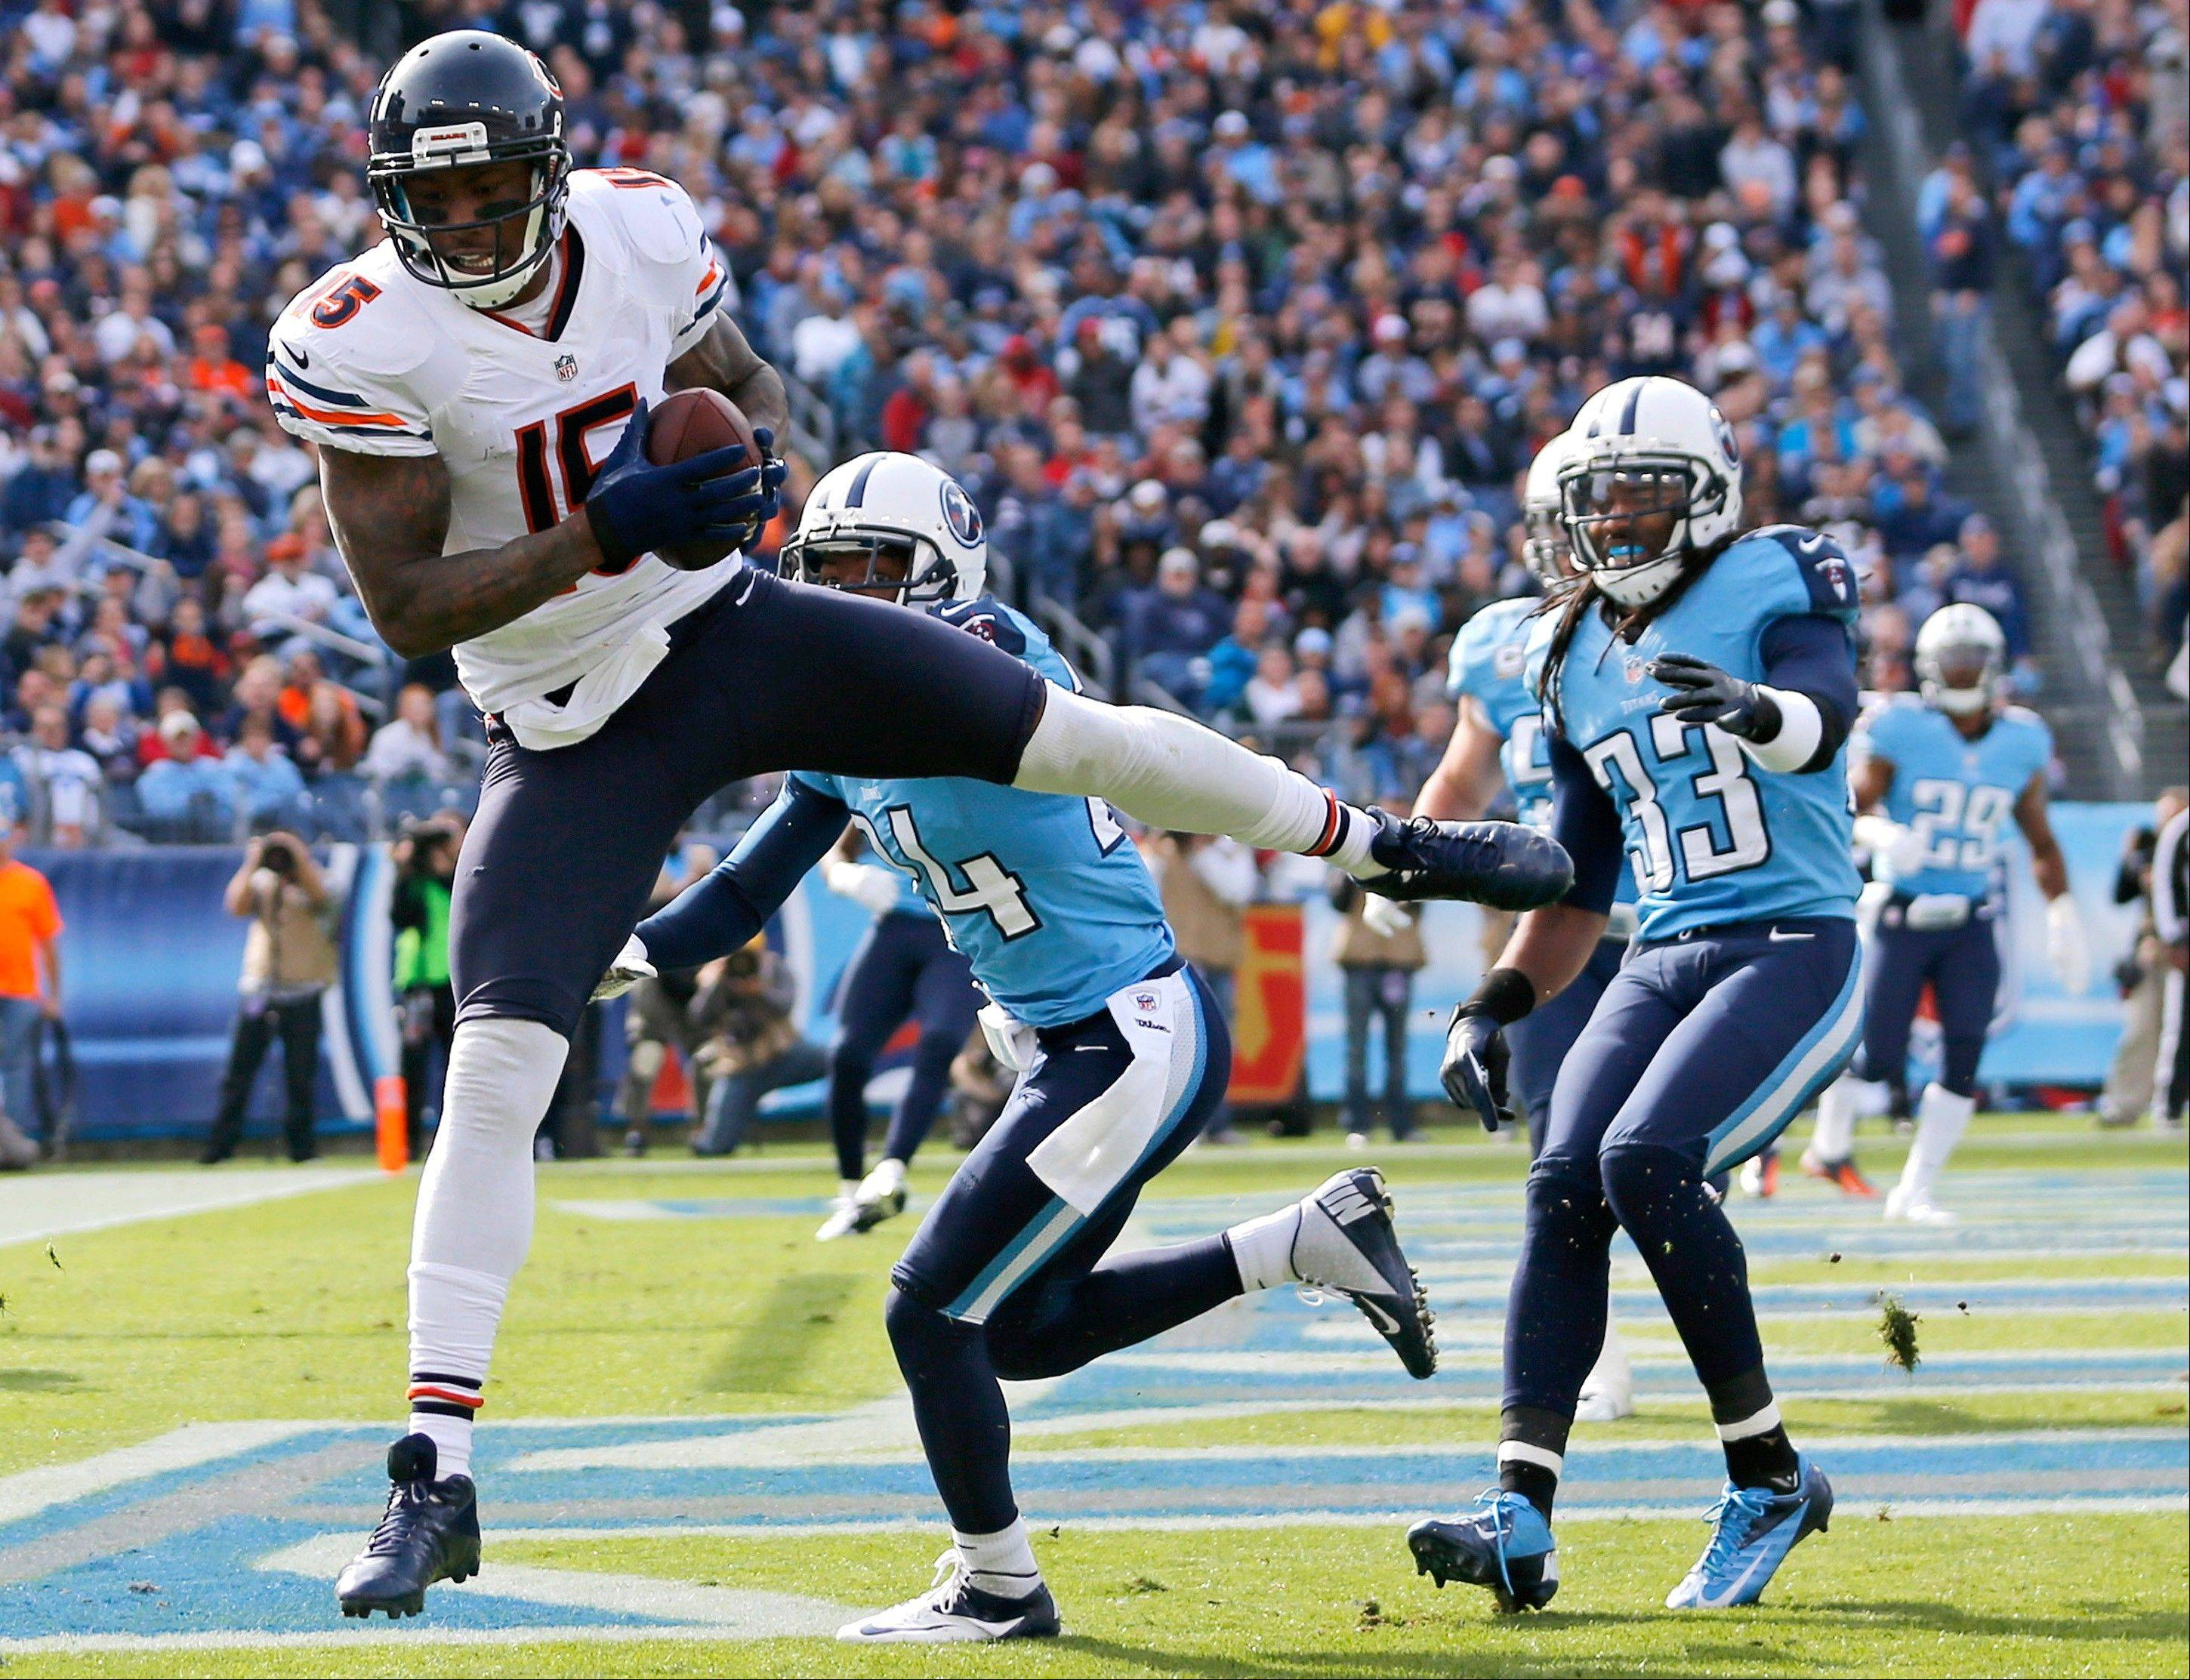 Bears wide receiver Brandon Marshall catches a 13-yard touchdown pass as he is defended by Tennessee Titans cornerback Coty Sensabaugh (24) and safety Michael Griffin (33) in the first quarter Sunday.